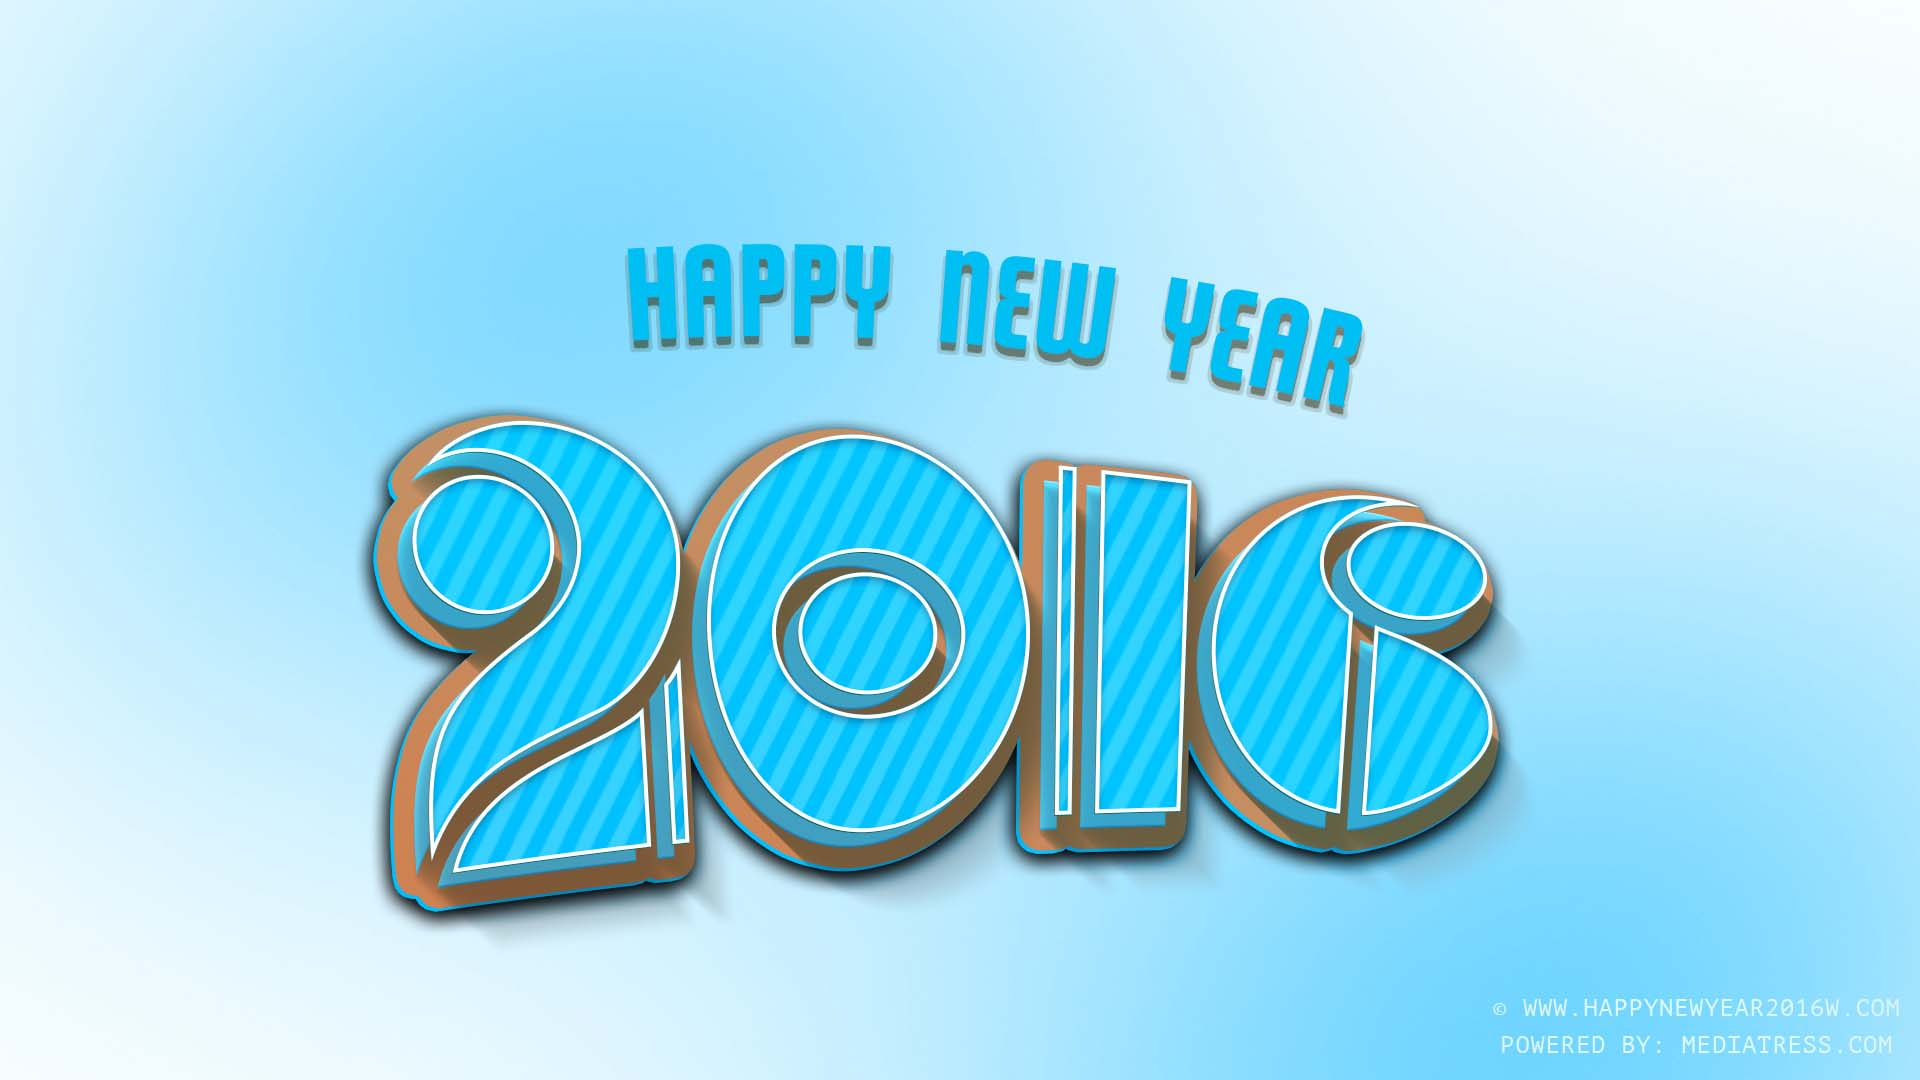 Beautiful Happy New Year Wallpapers HD (6)